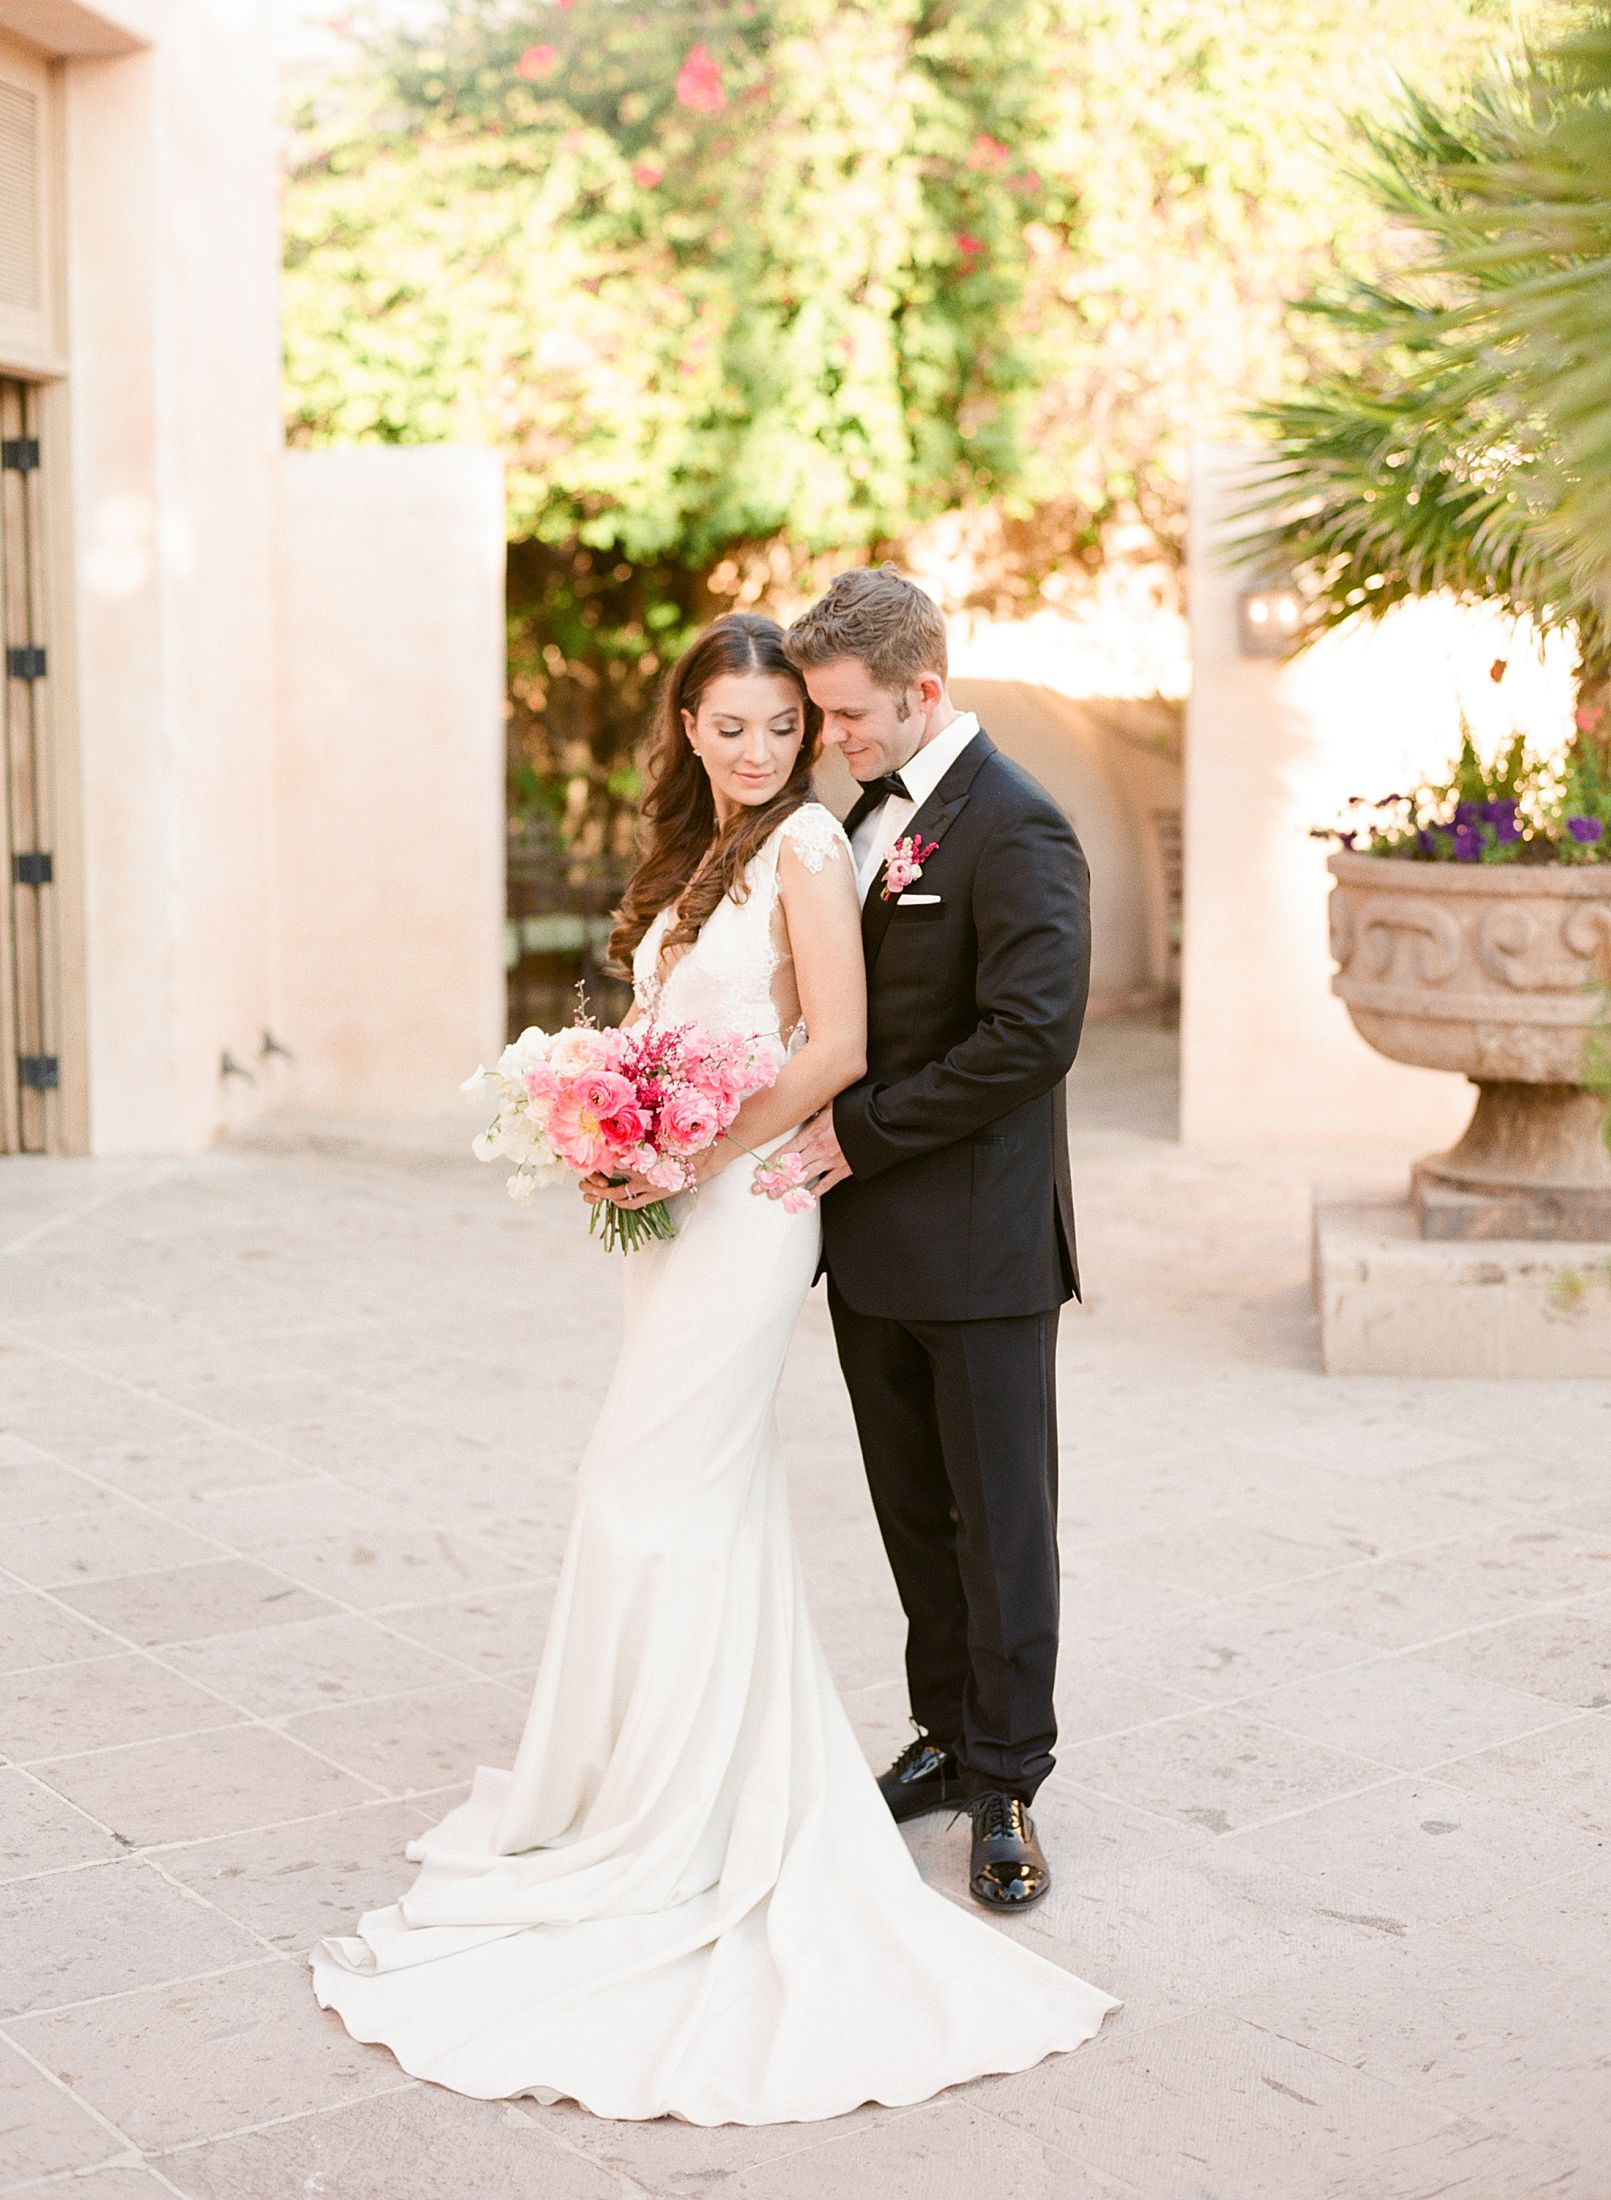 Pink Ombre Wedding Inspiration on Style Me Pretty - Royal Palms Wedding - Scottsdale Wedding - Ashley Baumgartner - Bloom and Blueprint - Wedding Puppies - Bulldog Puppies_0023.jpg